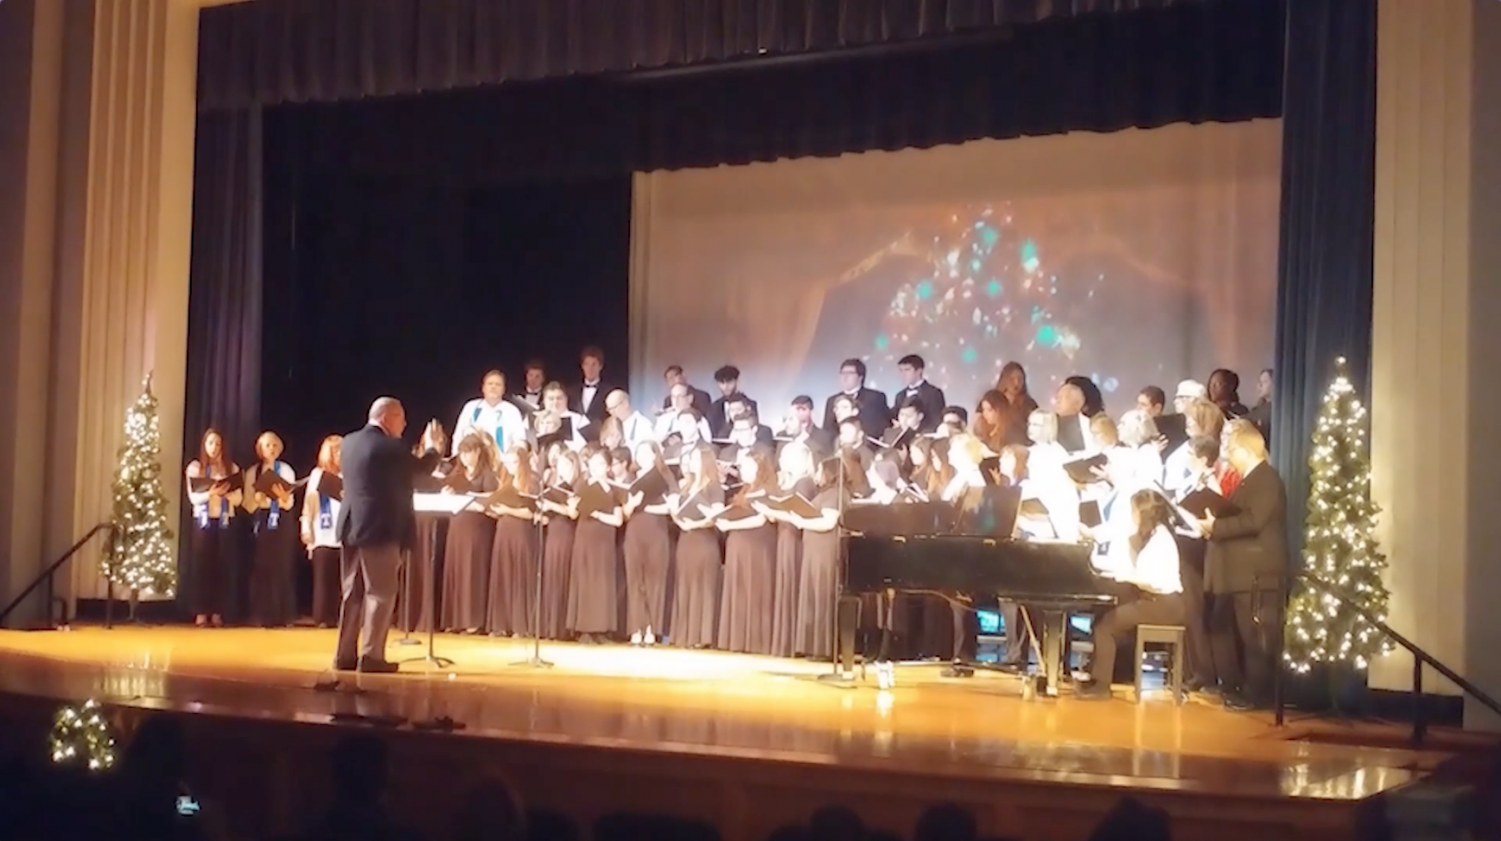 The Eagle Singers and Taft Choir Alumni share a stage to sing